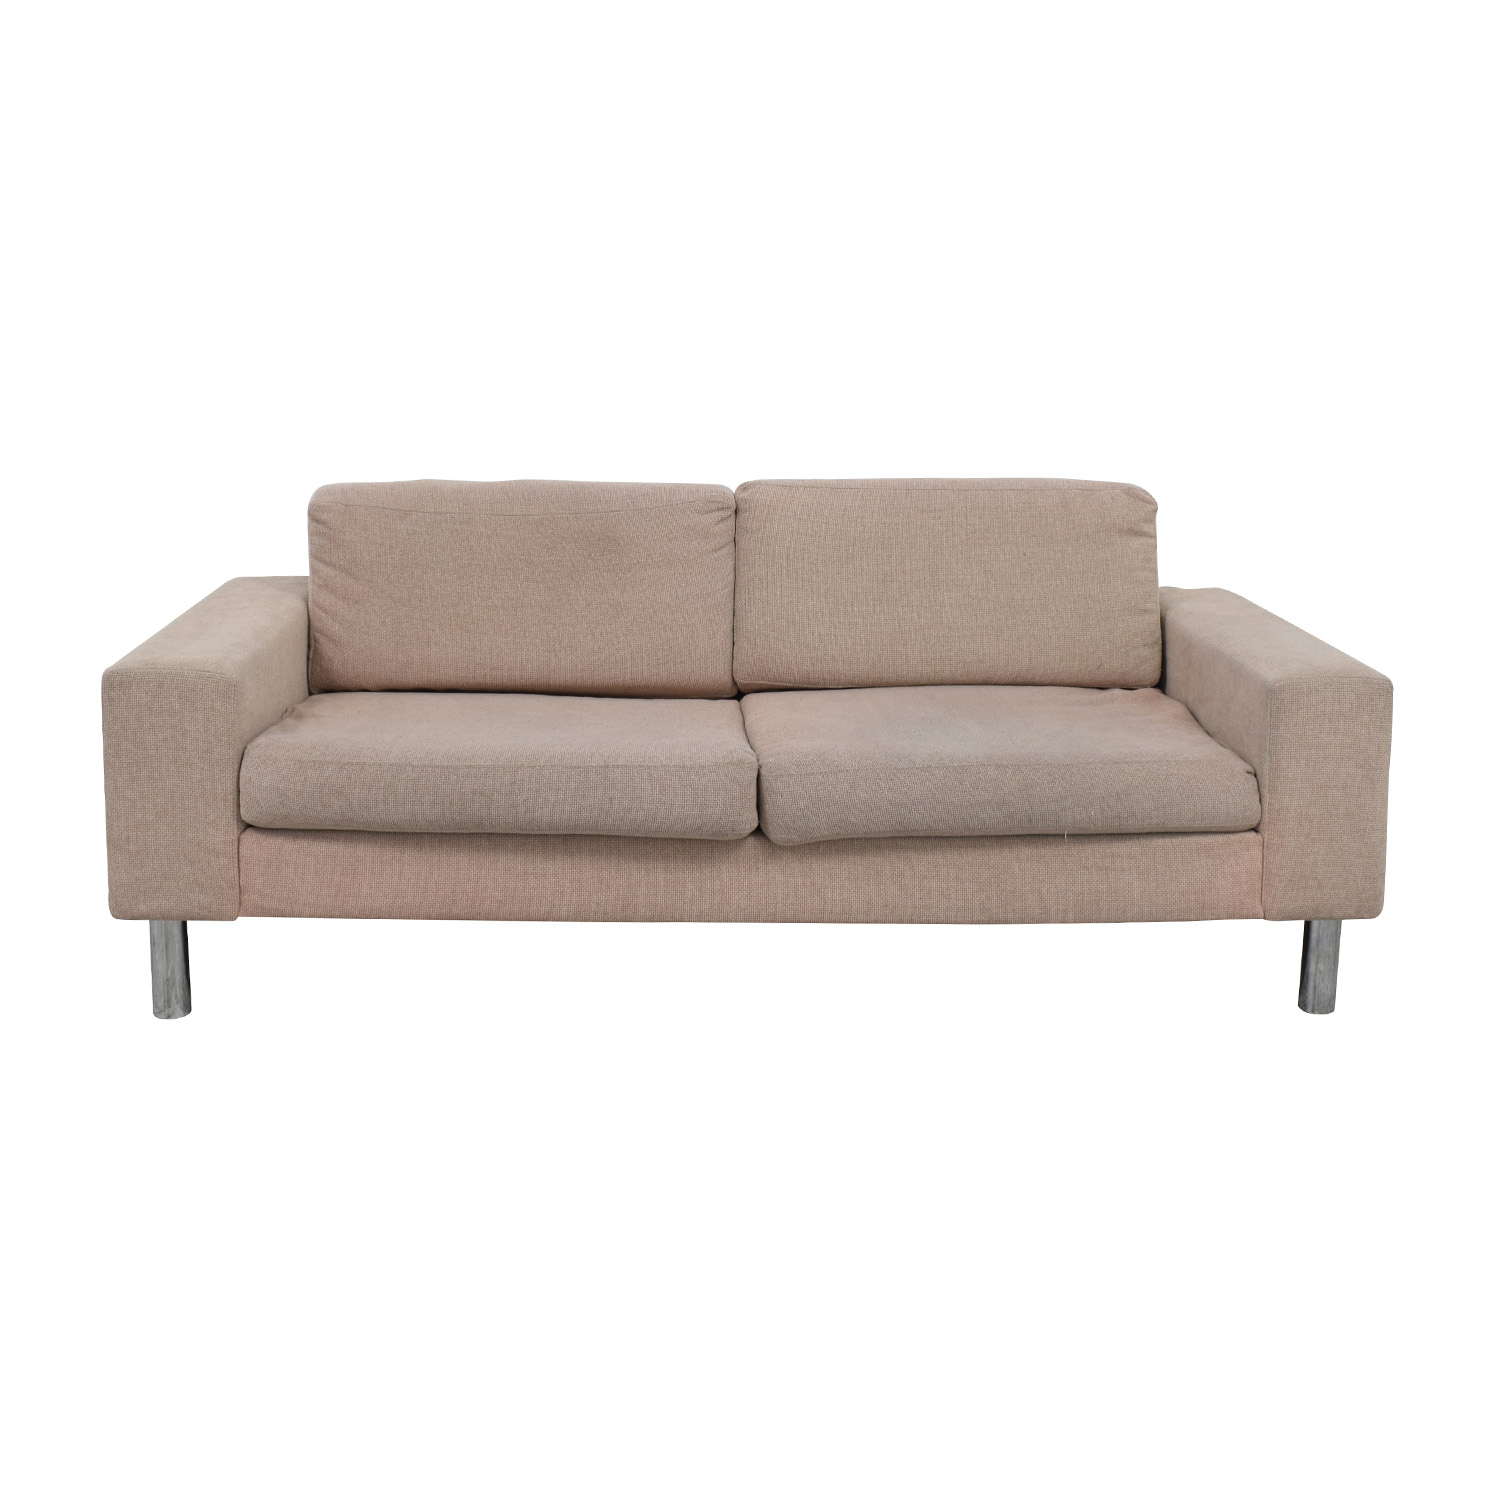 raymond and flanigan sofa bed design latest sofas second hand